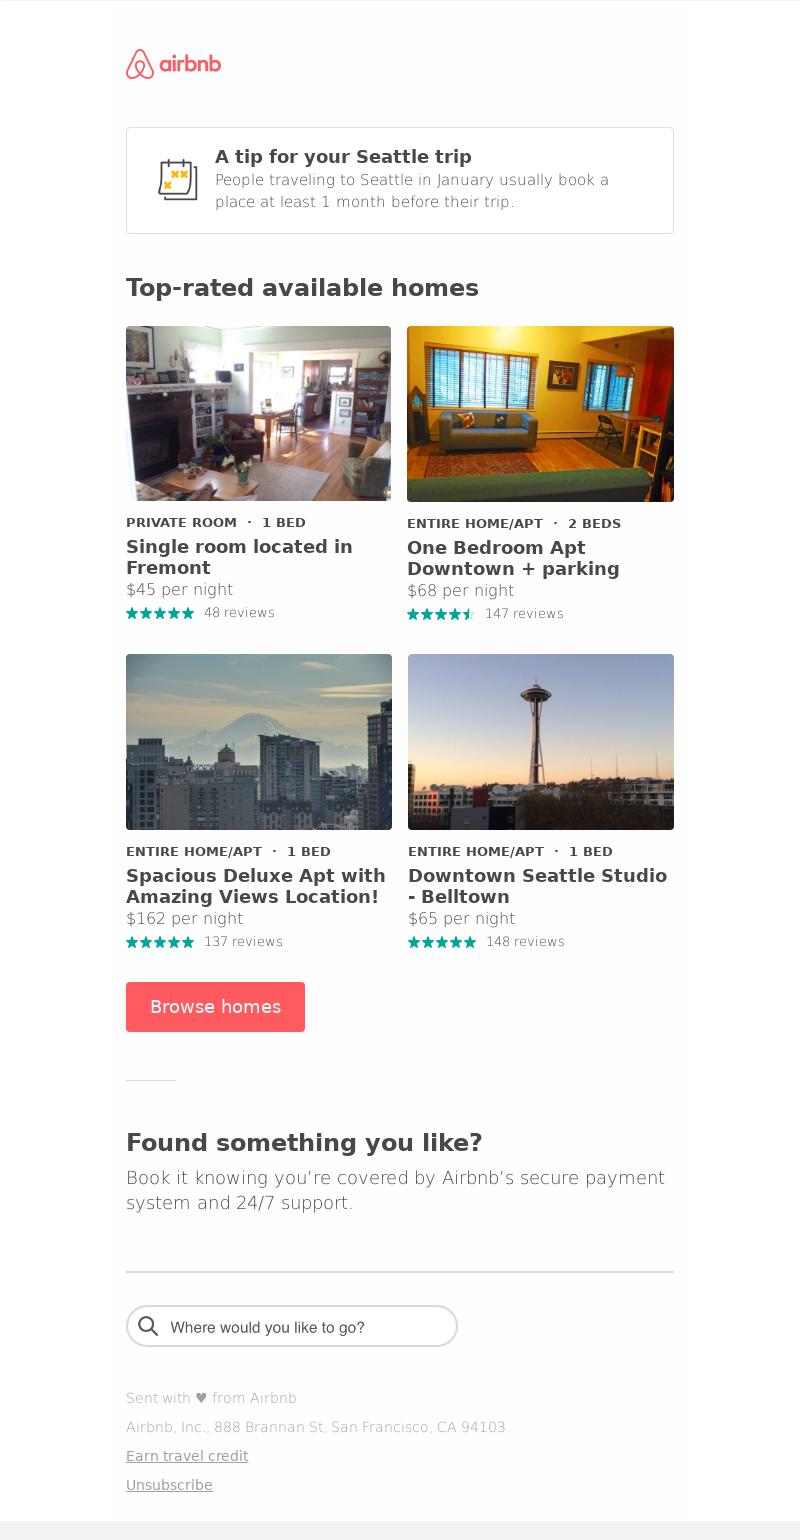 Airbnb - Travel tip: Book your Seattle trip at least 1 month in advance